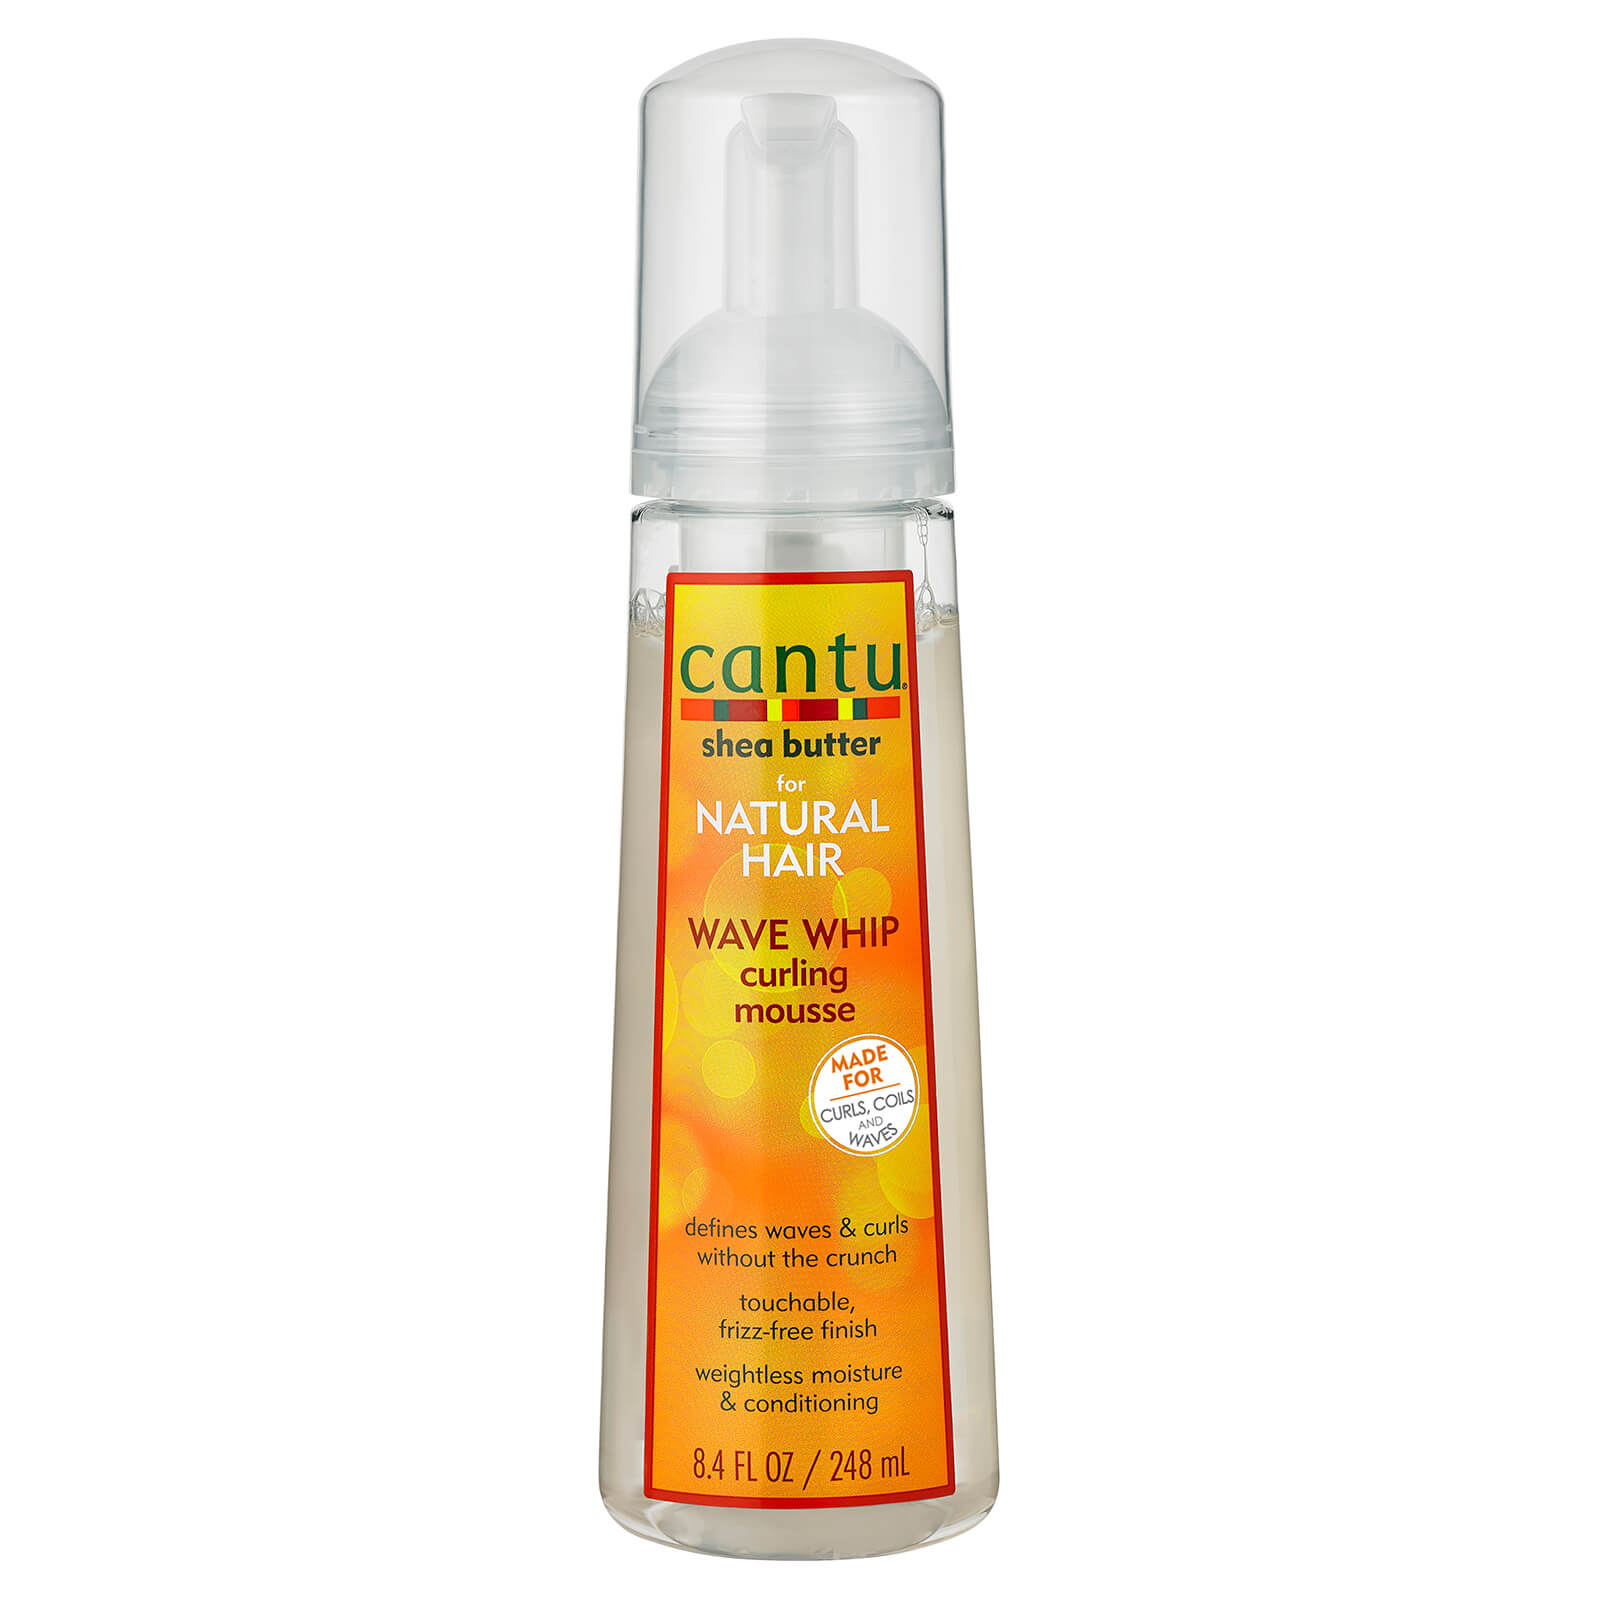 Купить Cantu Shea Butter for Natural Hair Wave Whip Curling Mousse 248 ml